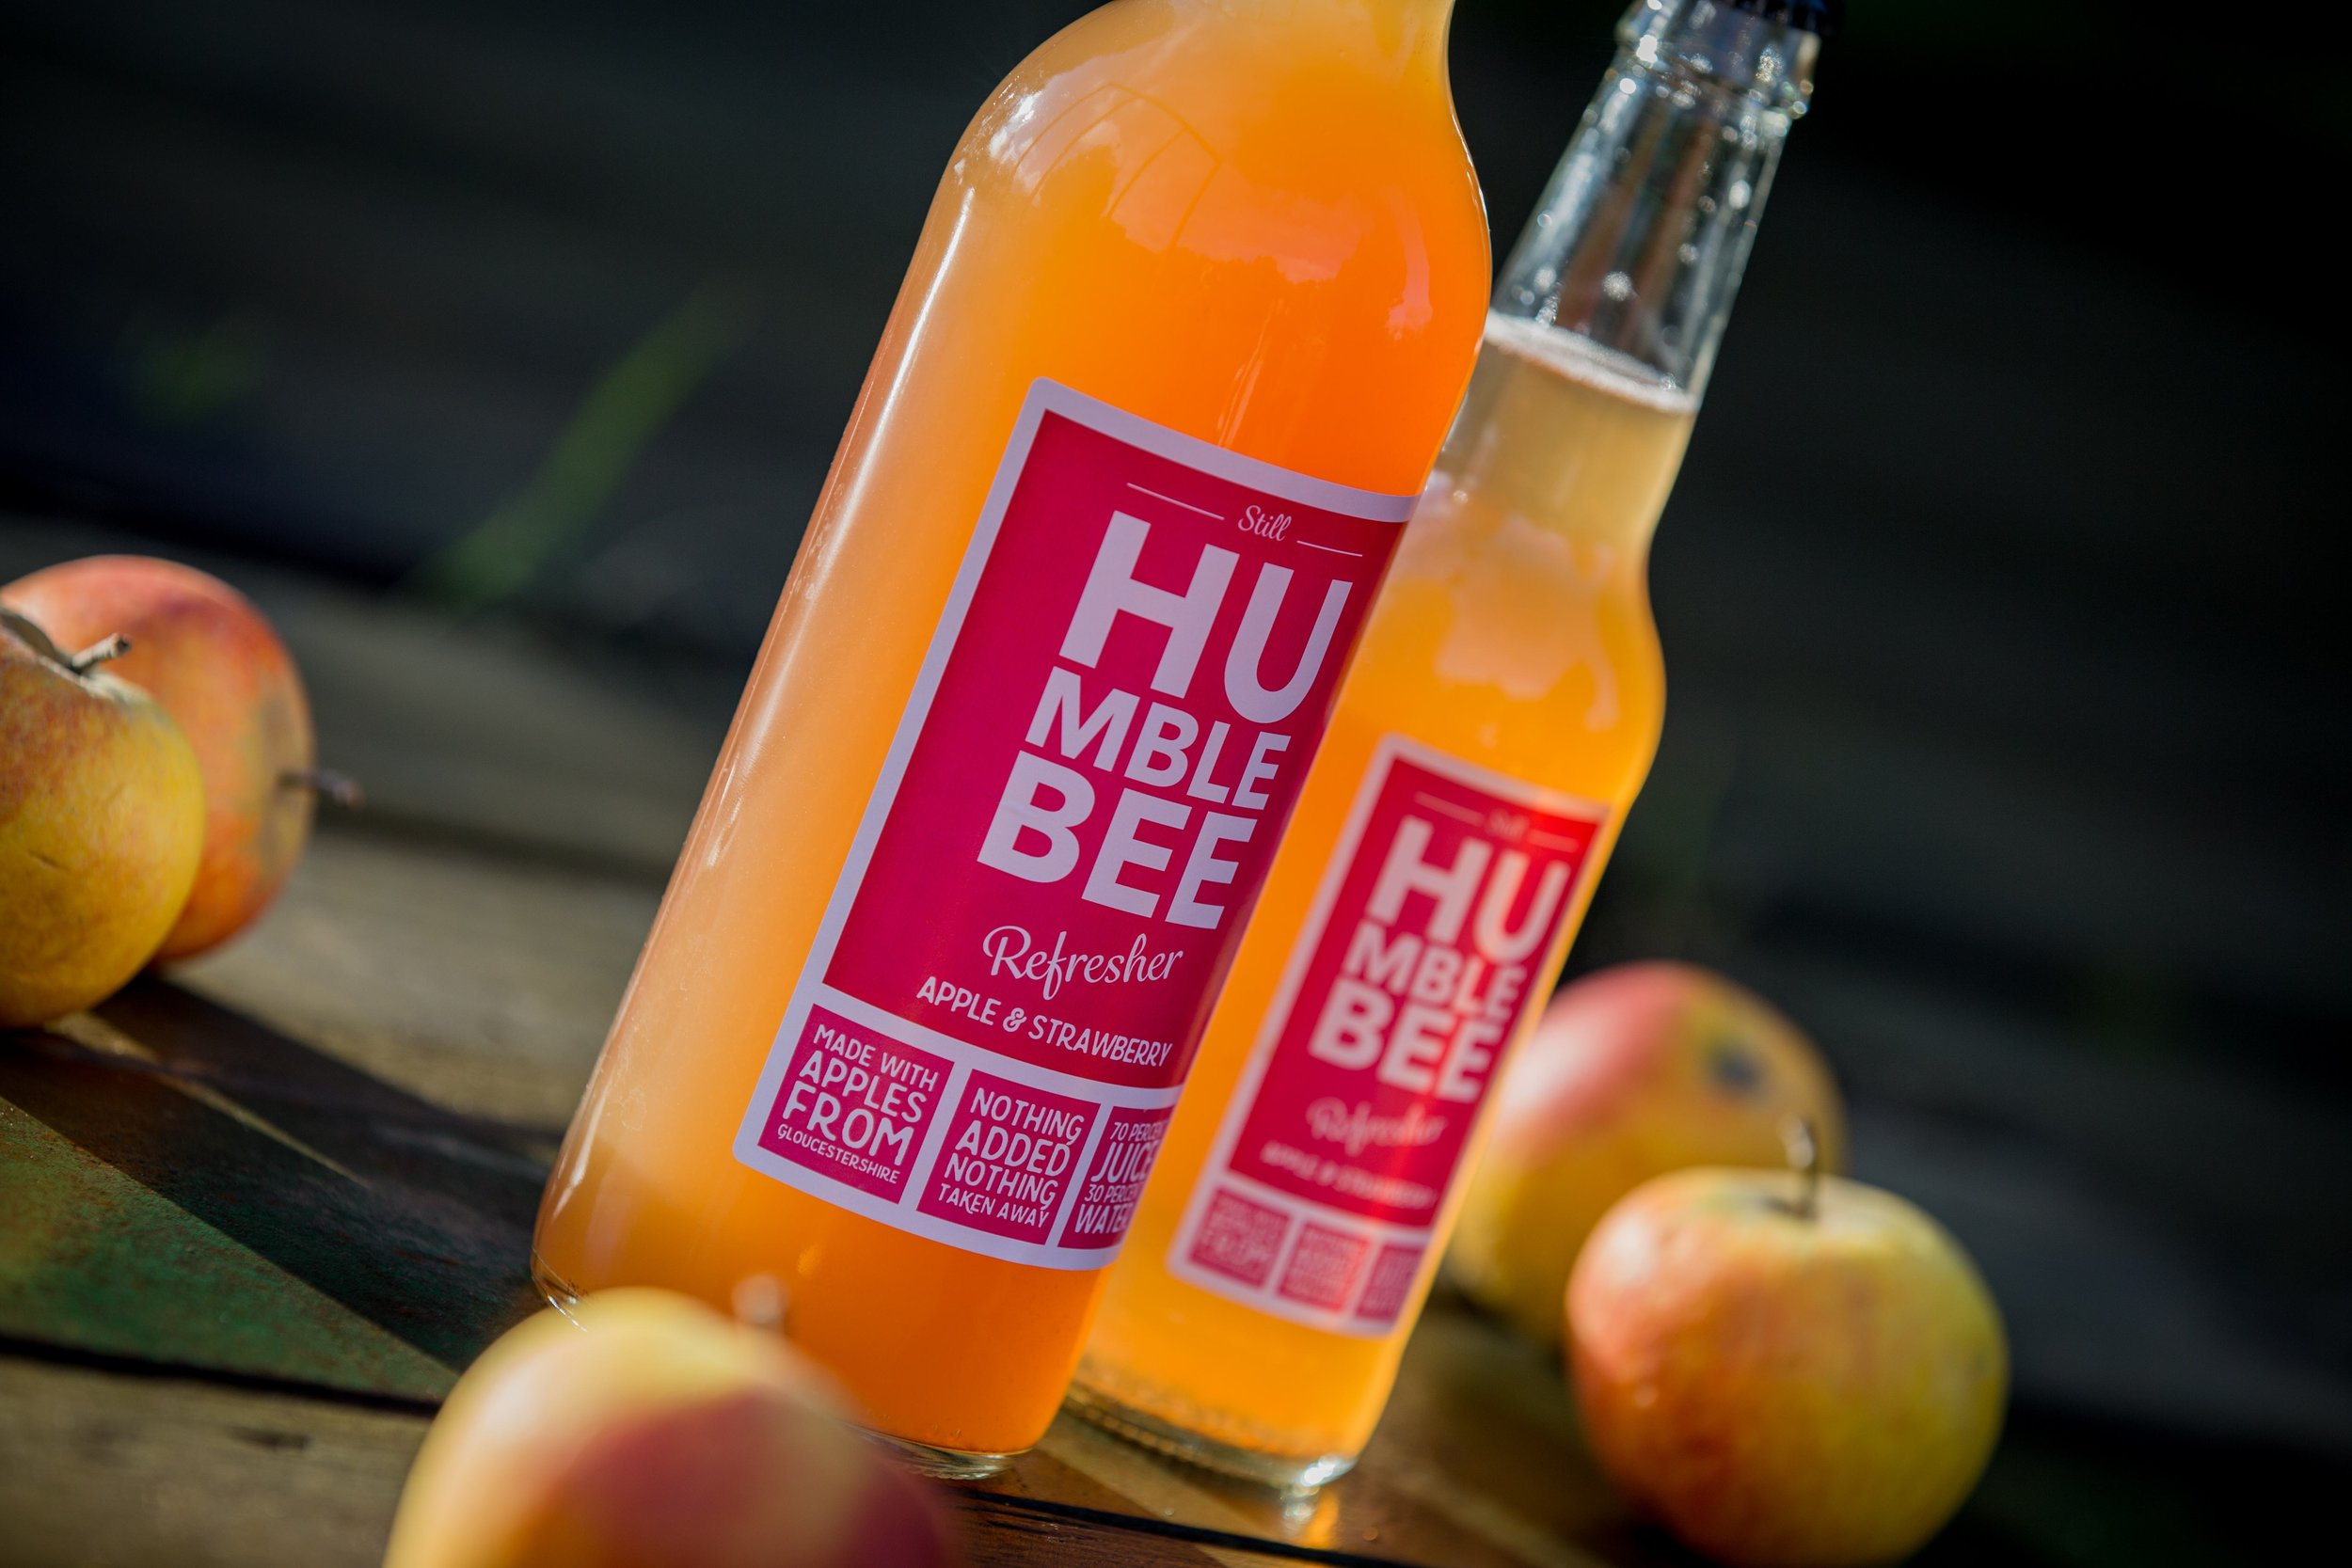 Humblebee Refresher Strawberry 2 angle with apples v2.jpg